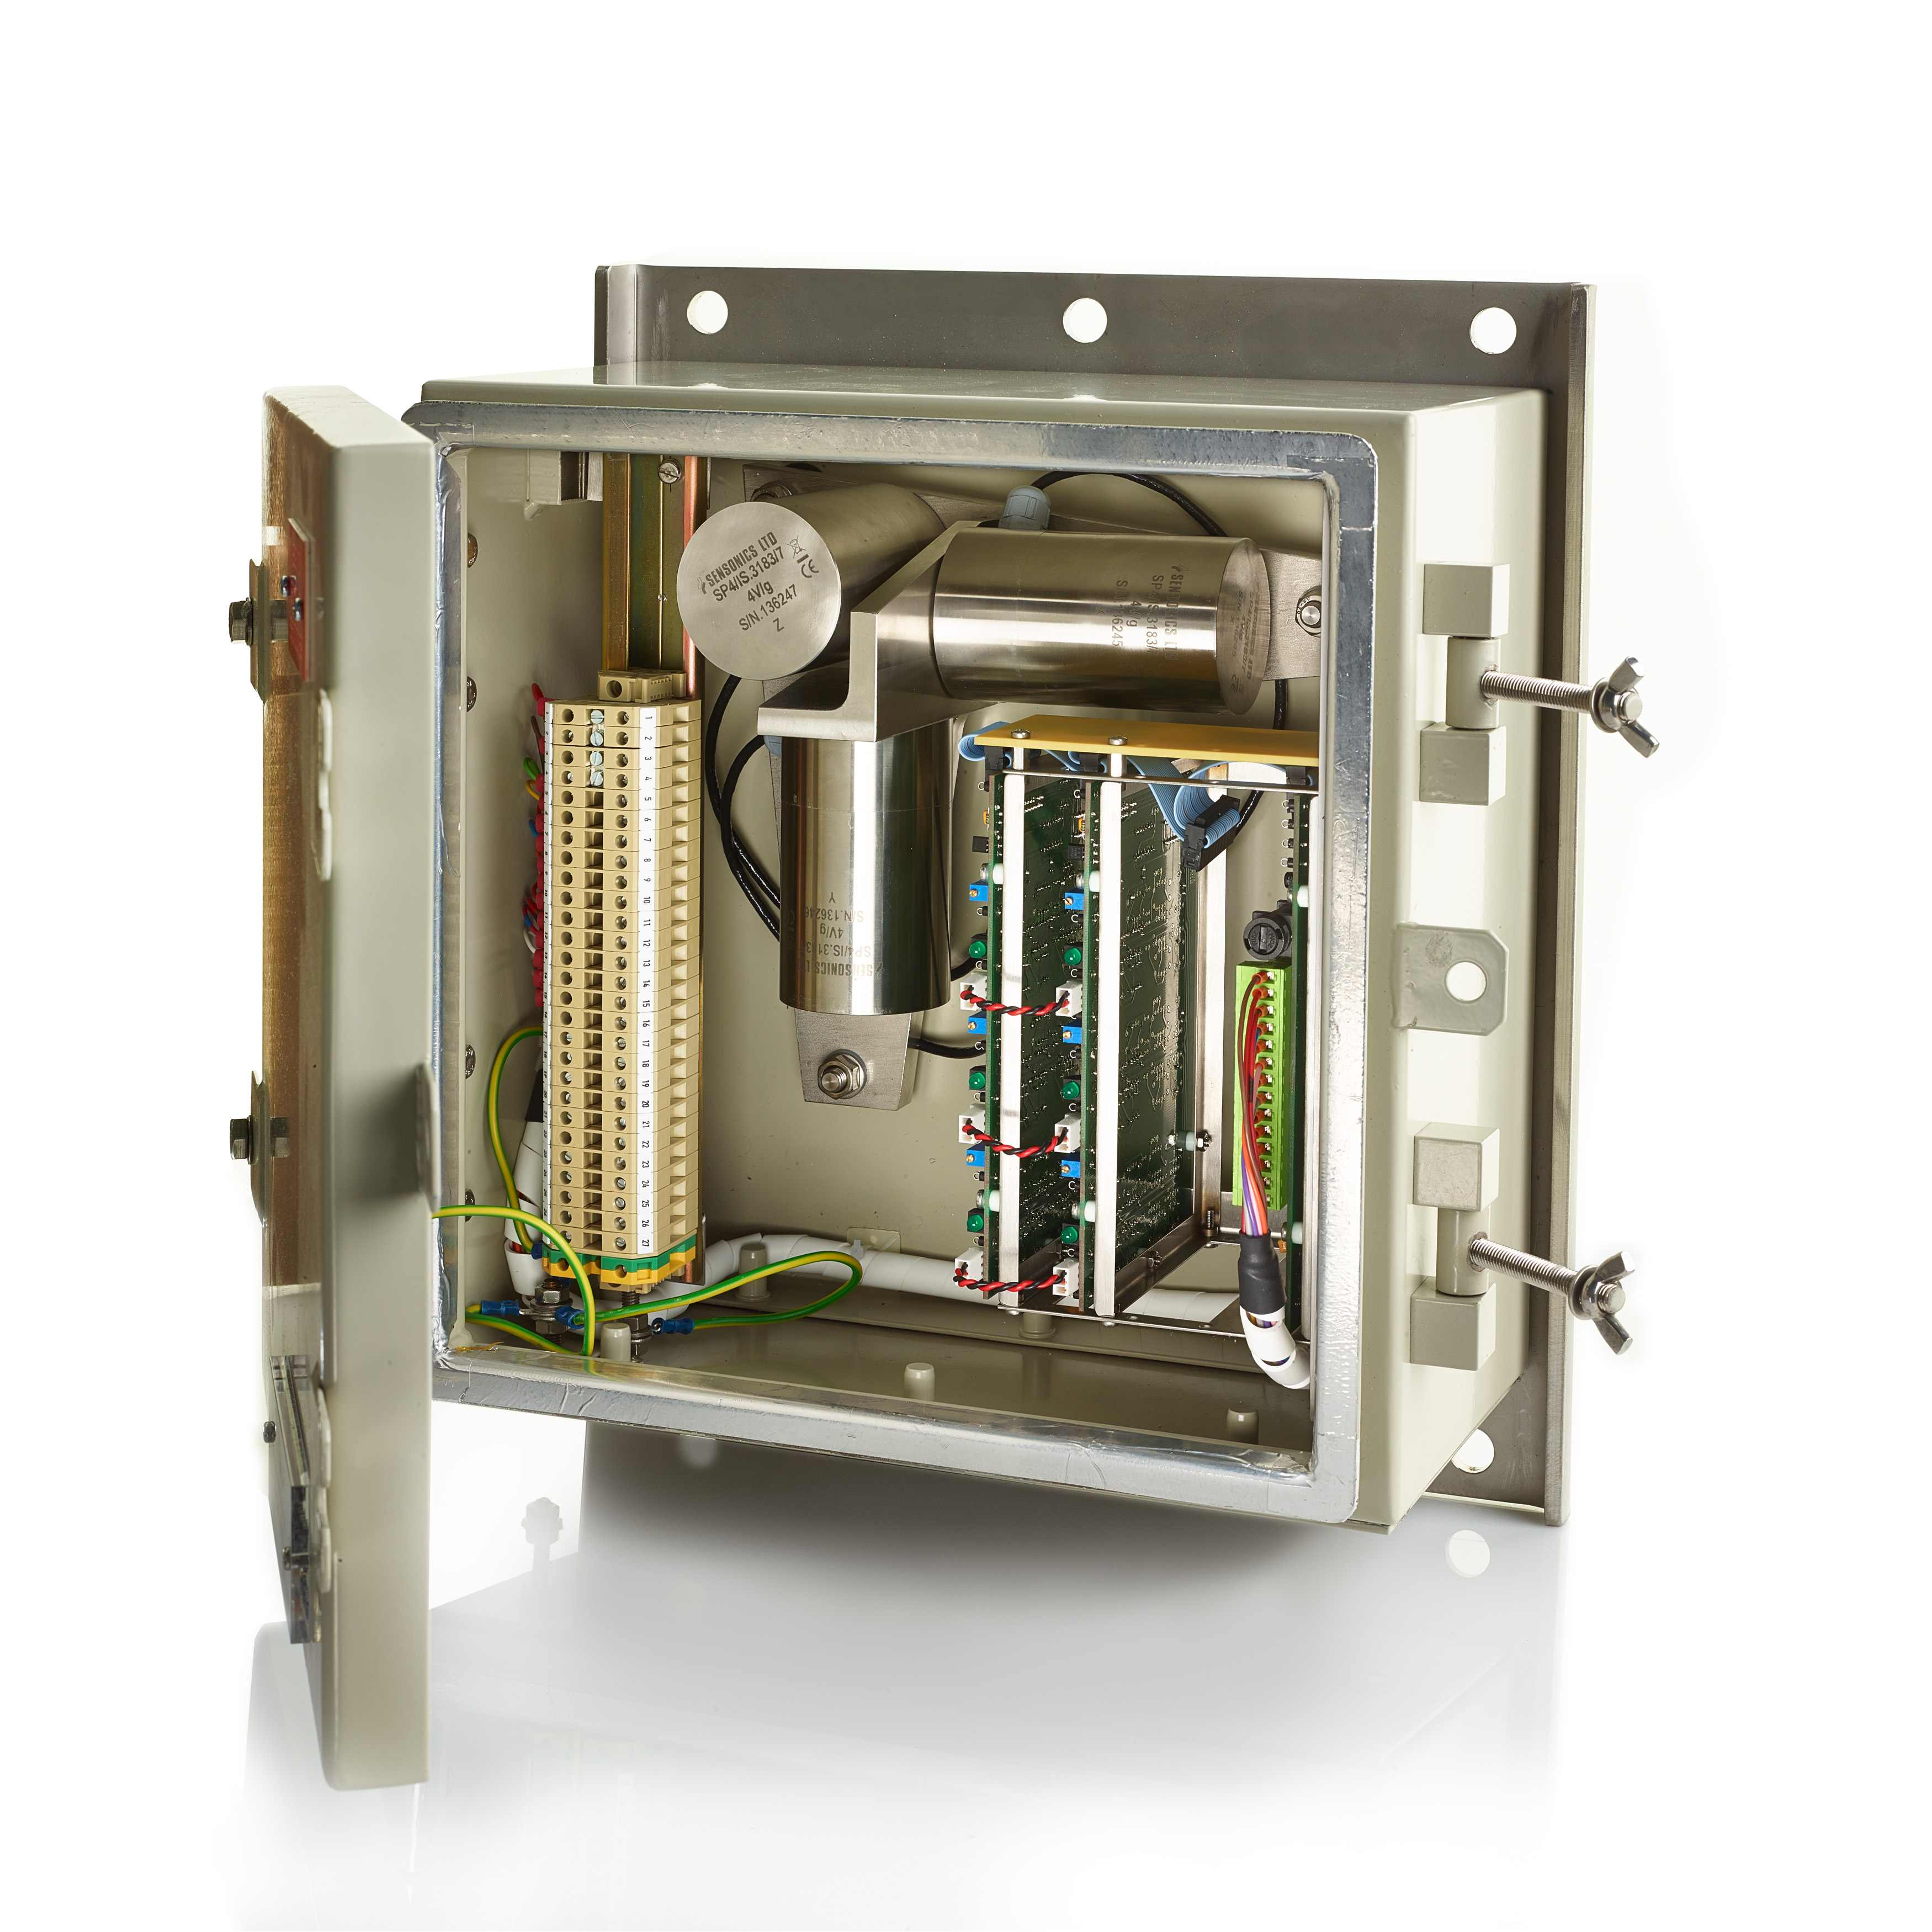 Seismic Safety Switch Provides High Integrity Protection